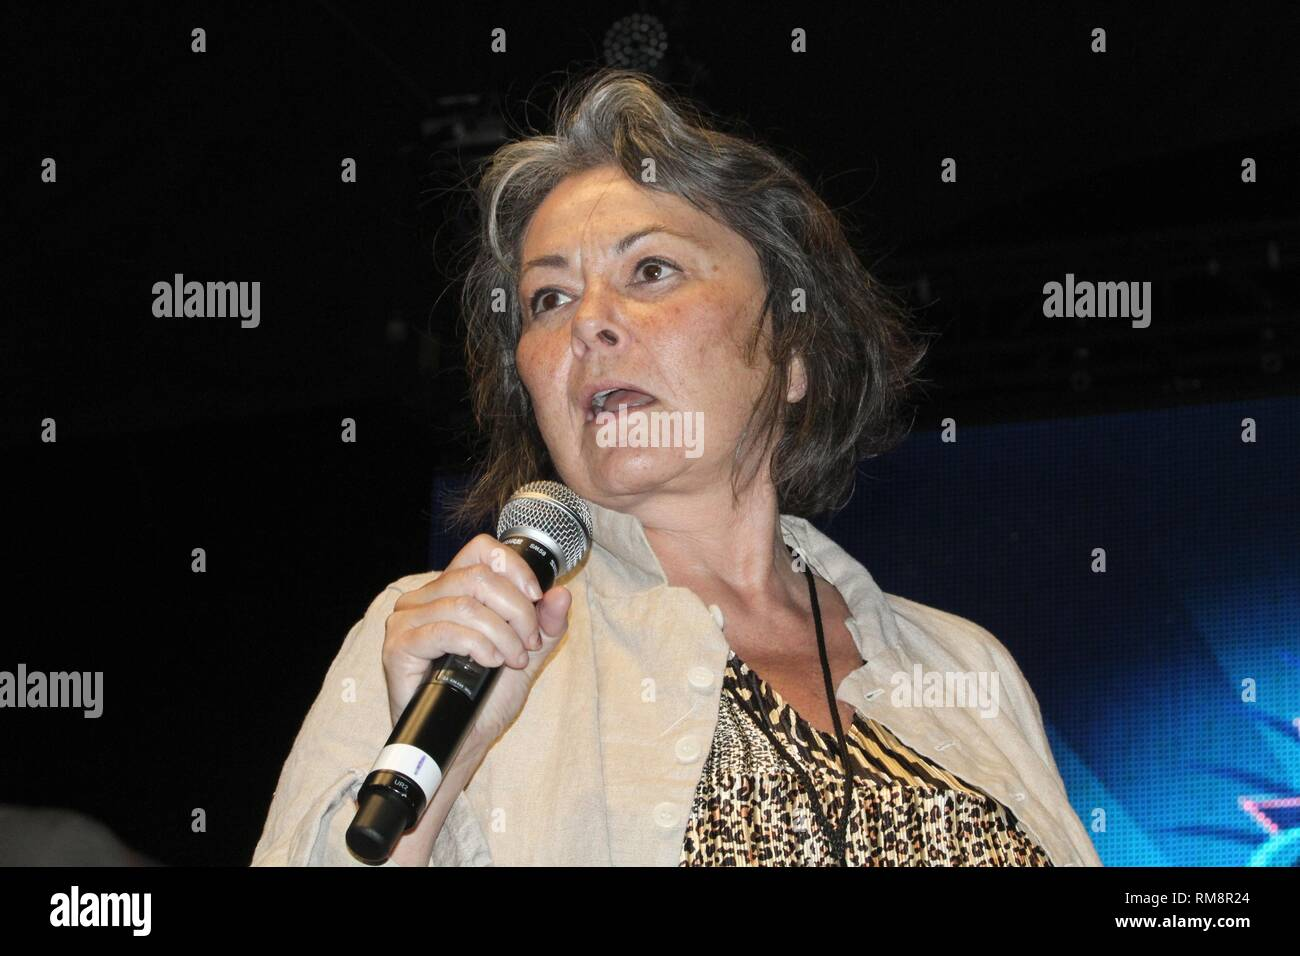 Presidential candidate Roseanne Barr is shown giving a speech on stage at the Gathering of the Vibes music festival in Bridgeport, Connecticut. Stock Photo